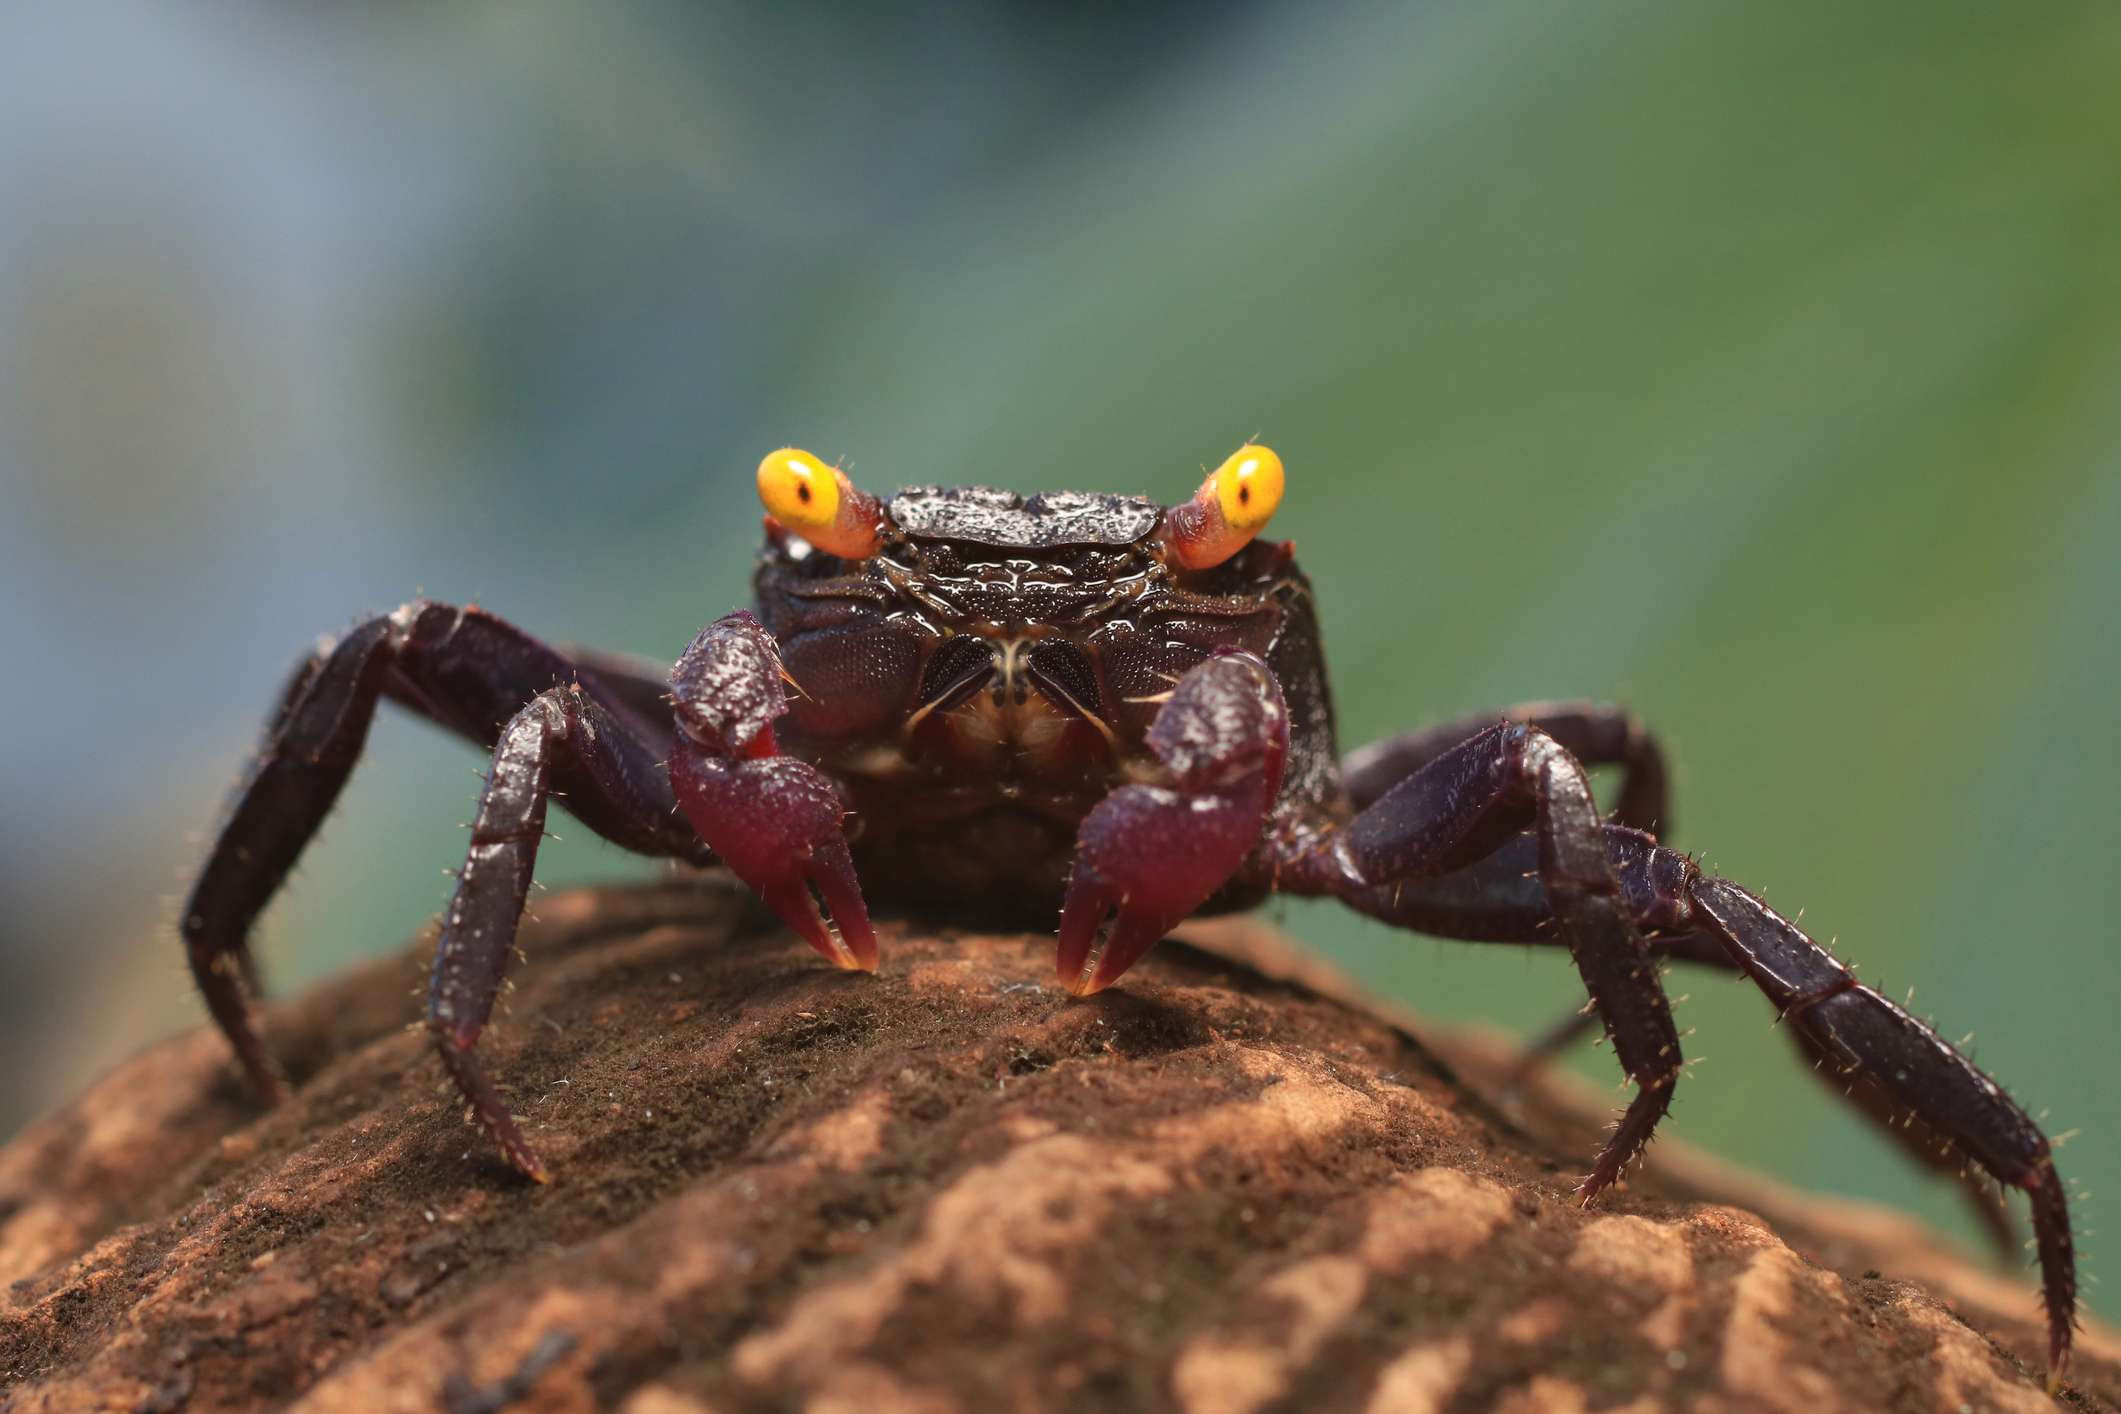 purple vampire crab with long legs and bright yellow eyes